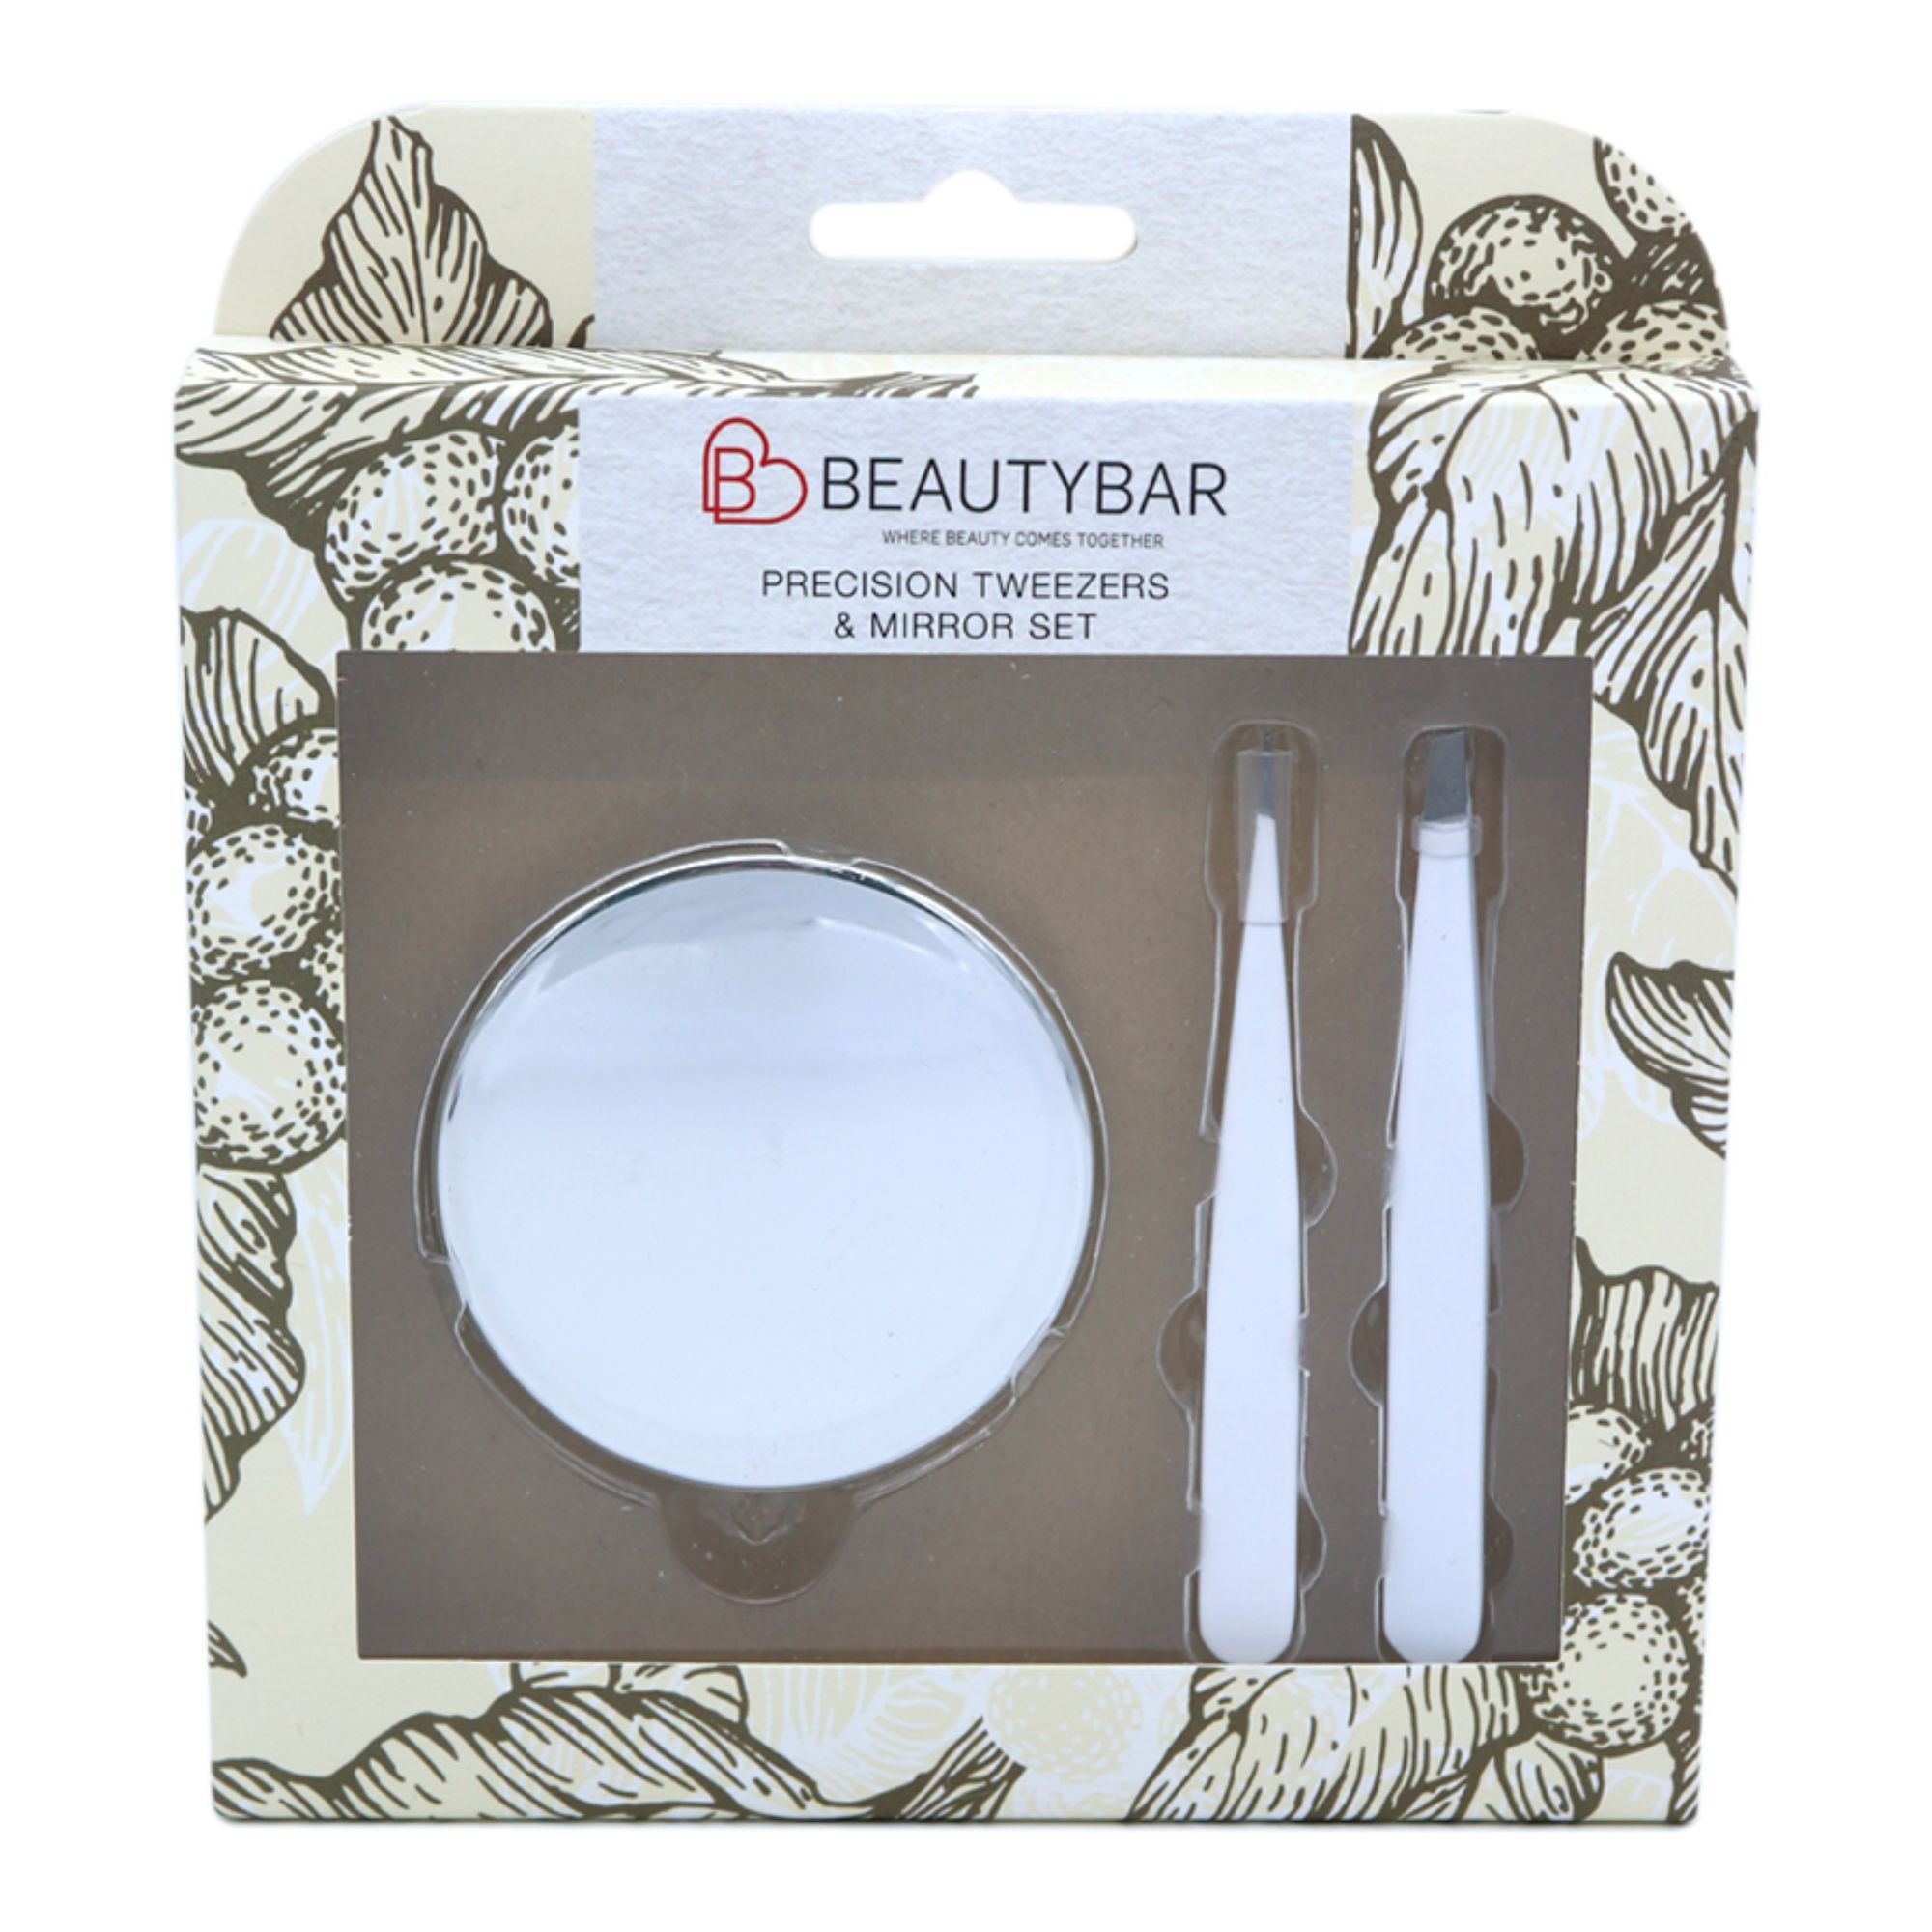 Tweezers and Mirror Set